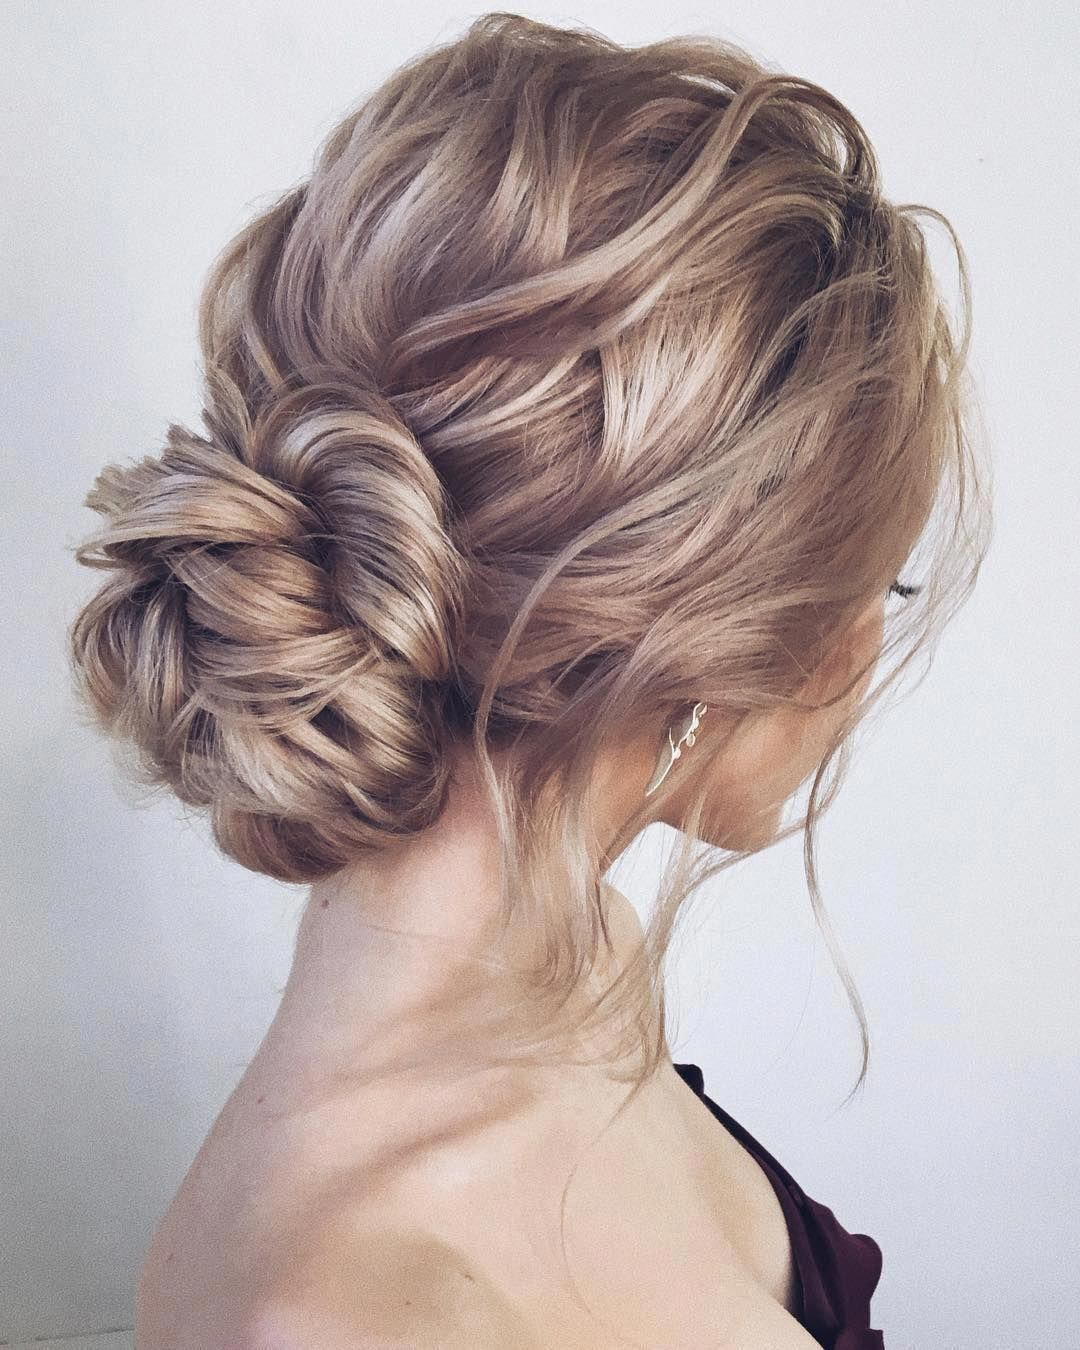 "Long Wedding hairstyles and updos from lenabogucharskaya <a class=""pintag"" href=""/explore/weddings/"" title=""#weddings explore Pinterest"">#weddings</a> <a class=""pintag"" href=""/explore/hairstyles/"" title=""#hairstyles explore Pinterest"">#hairstyles</a> <a class=""pintag"" href=""/explore/weddingideas/"" title=""#weddingideas explore Pinterest"">#weddingideas</a> <a class=""pintag"" href=""/explore/weddinghairstyles/"" title=""#weddinghairstyles explore Pinterest"">#weddinghairstyles</a> <a class=""pintag"" href=""/explore/hair/"" title=""#hair explore Pinterest"">#hair</a> <a class=""pintag"" href=""/explore/dpf/"" title=""#dpf explore Pinterest"">#dpf</a> <a class=""pintag"" href=""/explore/deerpearlflowers/"" title=""#deerpearlflowers explore Pinterest"">#deerpearlflowers</a> <a class=""pintag"" href=""/explore/hairupdos/"" title=""#hairupdos explore Pinterest"">#hairupdos</a> <a class=""pintag"" href=""/explore/weddinghairstylesforlonghair/"" title=""#weddinghairstylesforlonghair explore Pinterest"">#weddinghairstylesforlonghair</a><p><a href=""http://www.homeinteriordesign.org/2018/02/short-guide-to-interior-decoration.html"">Short guide to interior decoration</a></p>"